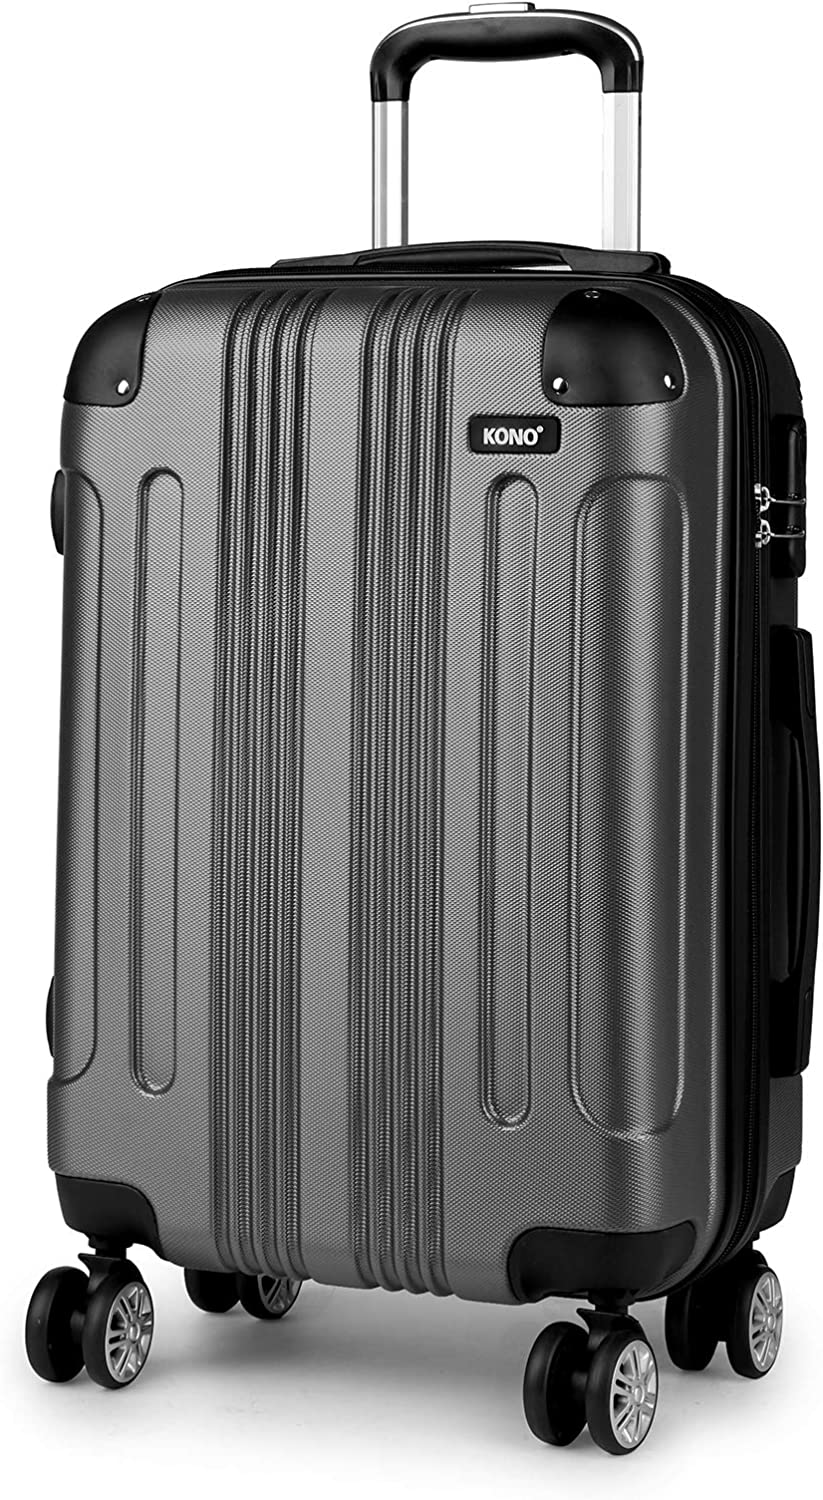 Kono Carry on Suitcase Hard Shell Luggage with 8 Spinner Wheels 22x14x9 Rolling Bag Gift with YKK Dual Zipper for Travel 20inch Grey